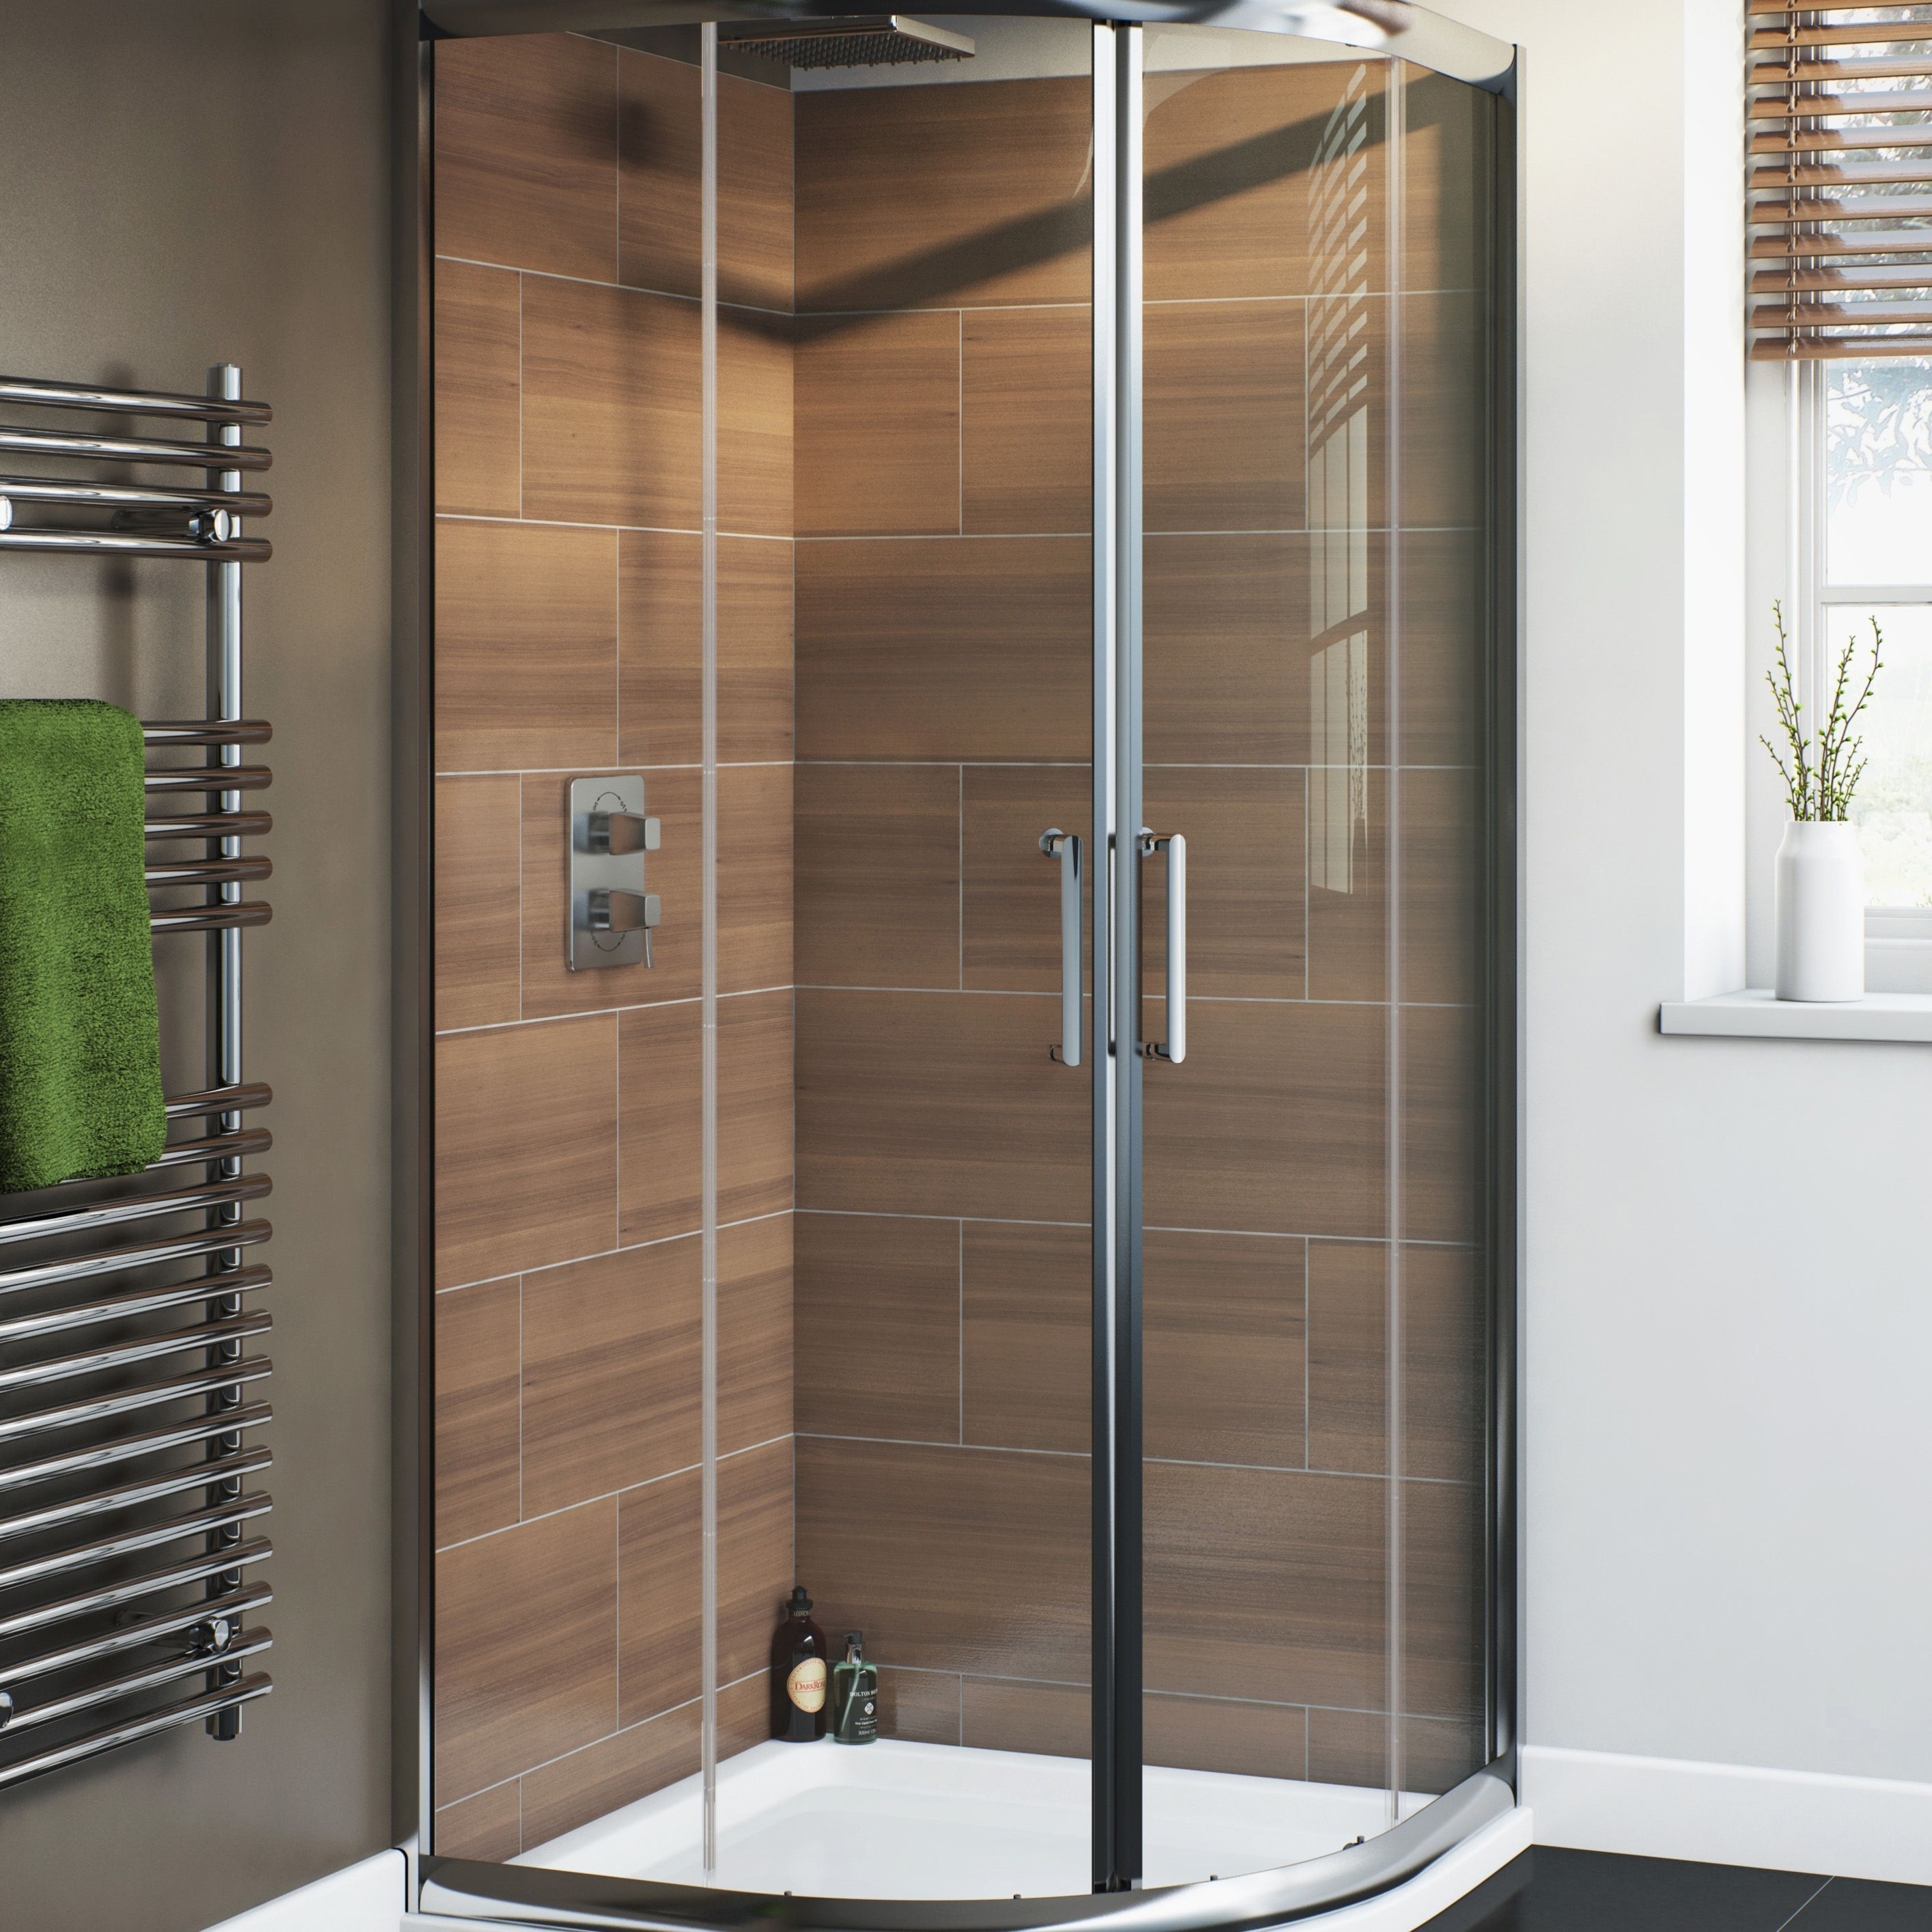 Diy At B Q: Cooke & Lewis Nadina Quadrant Shower Enclosure, Tray